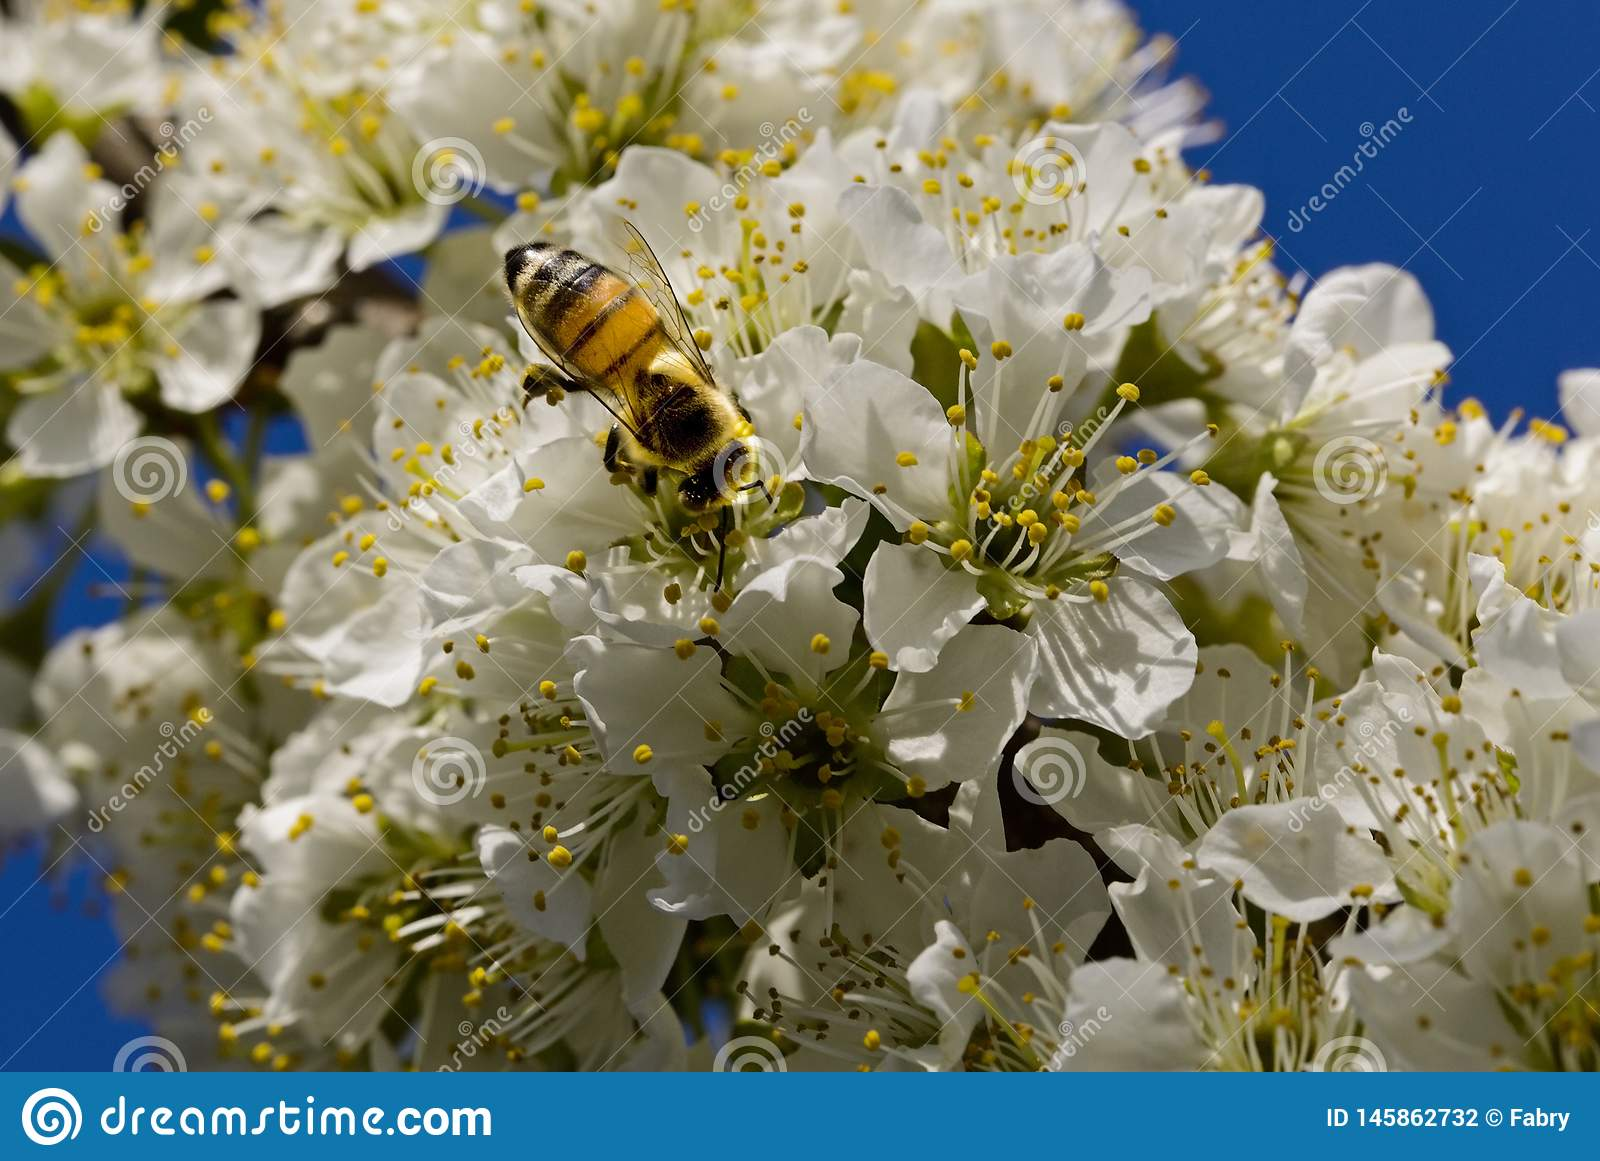 Bee pollinating on white flowers